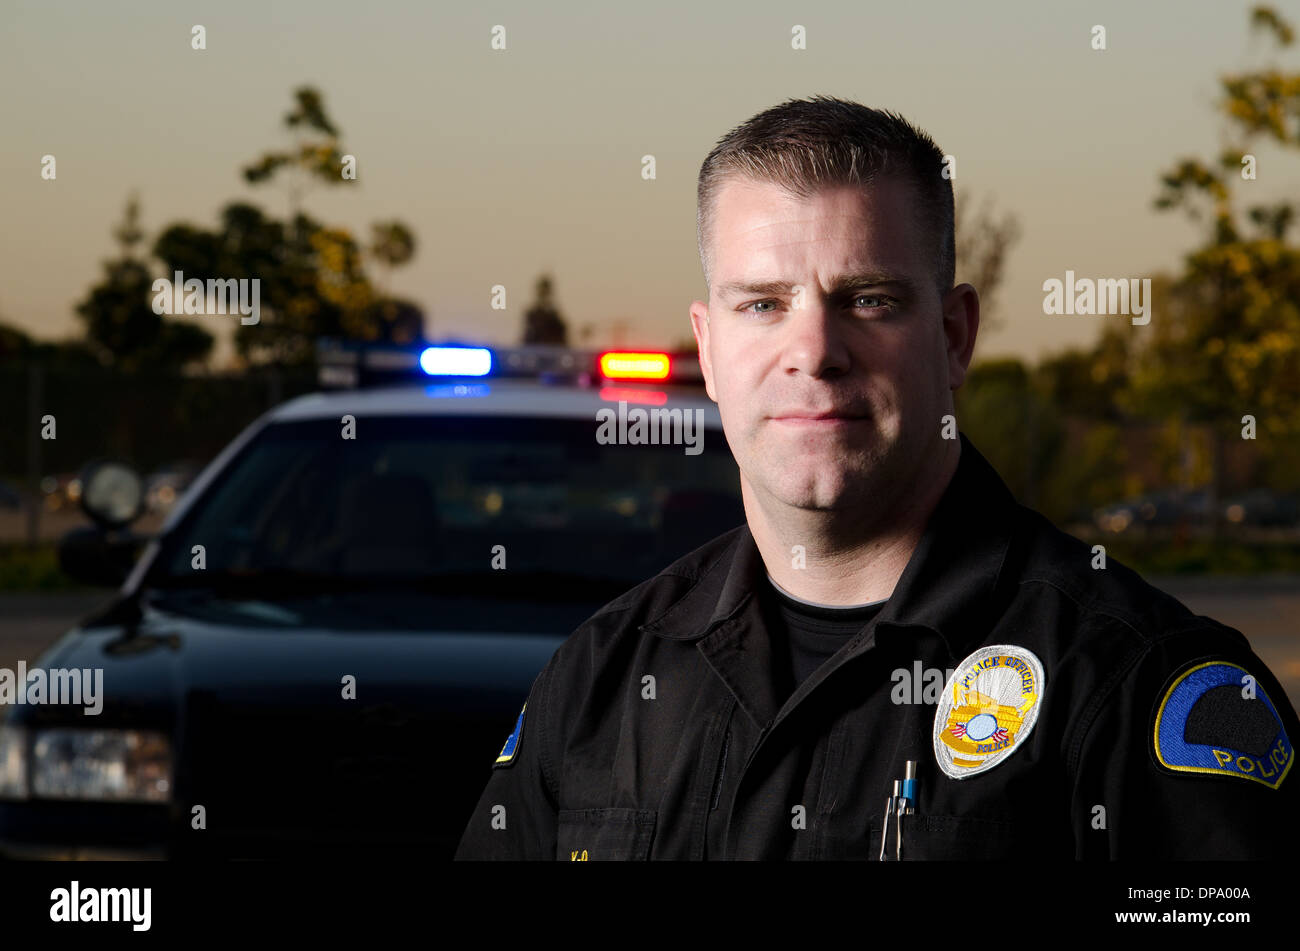 A serious looking police officer standing in his front of his patrol car. - Stock Image